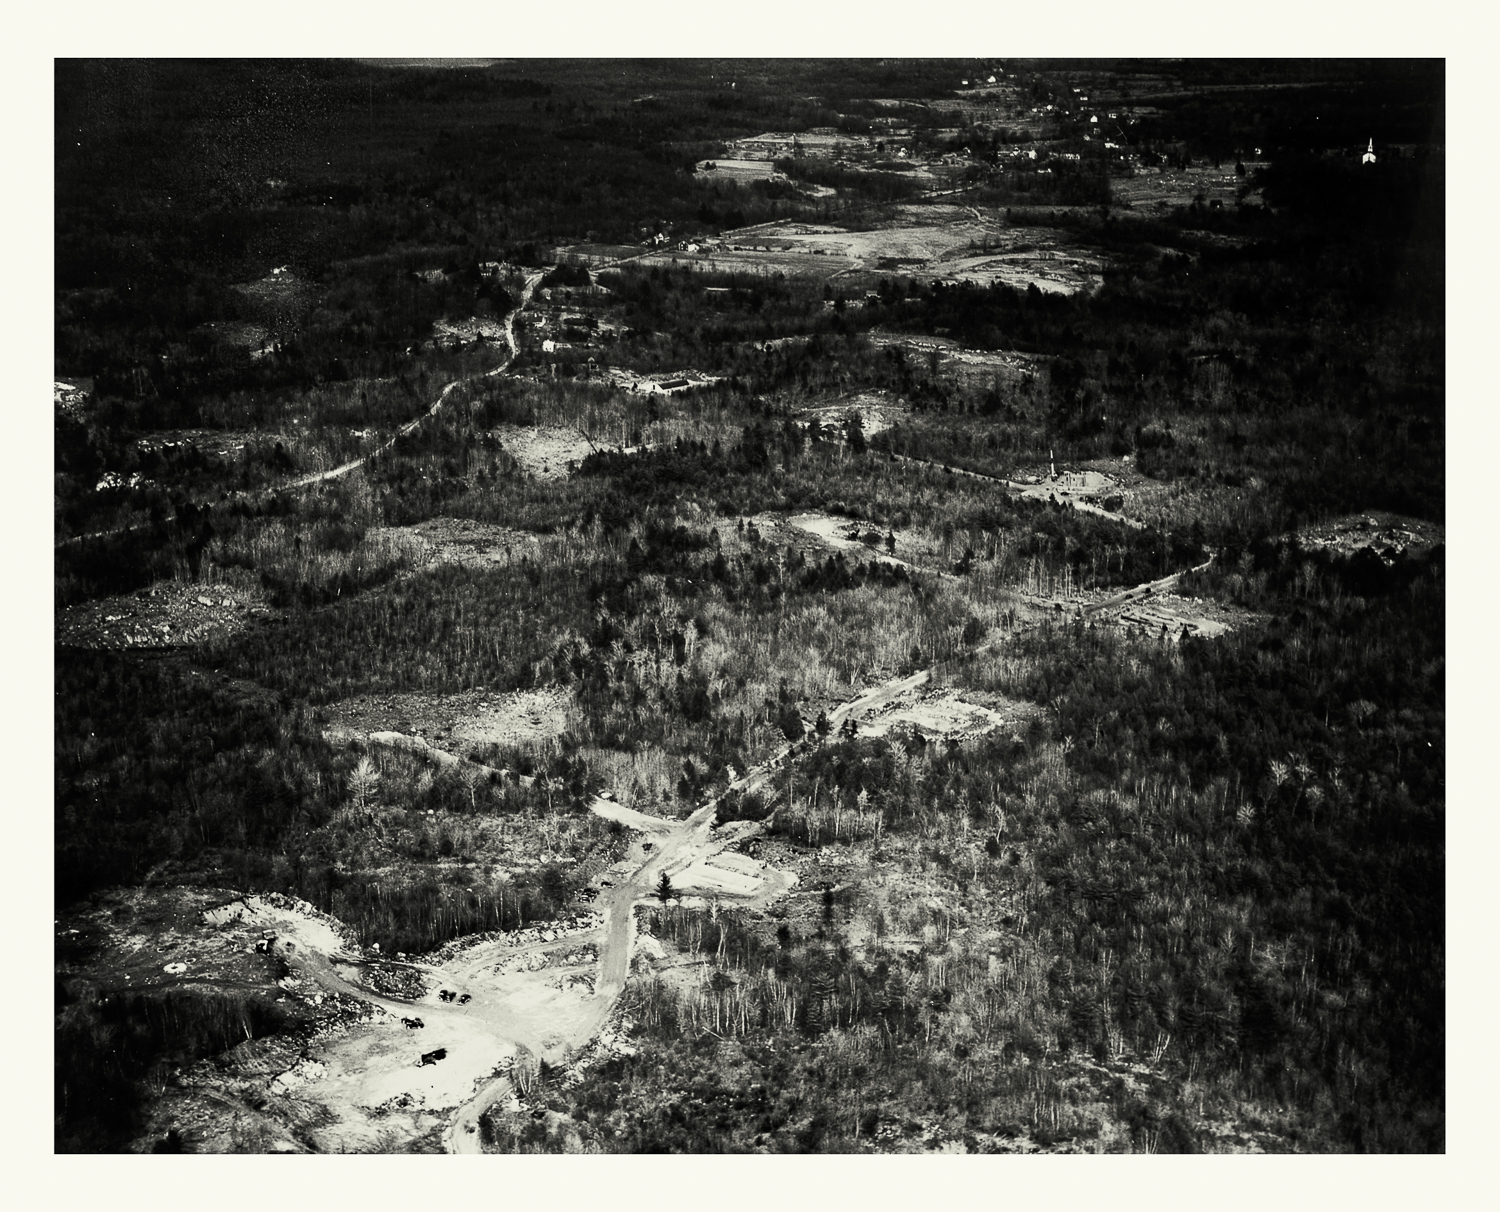 """Photograph No. PC 433. """"Aerial photograph depicting the construction progress on East Group 20 Hi-X Magazines, with Beechwood in the distance. Bunkers located at the Naval Ammunition Depot at Hingham, MA.' March 8, 1942; Records of Naval Districts and Shore Establishments, RG 181, NARA Boston."""